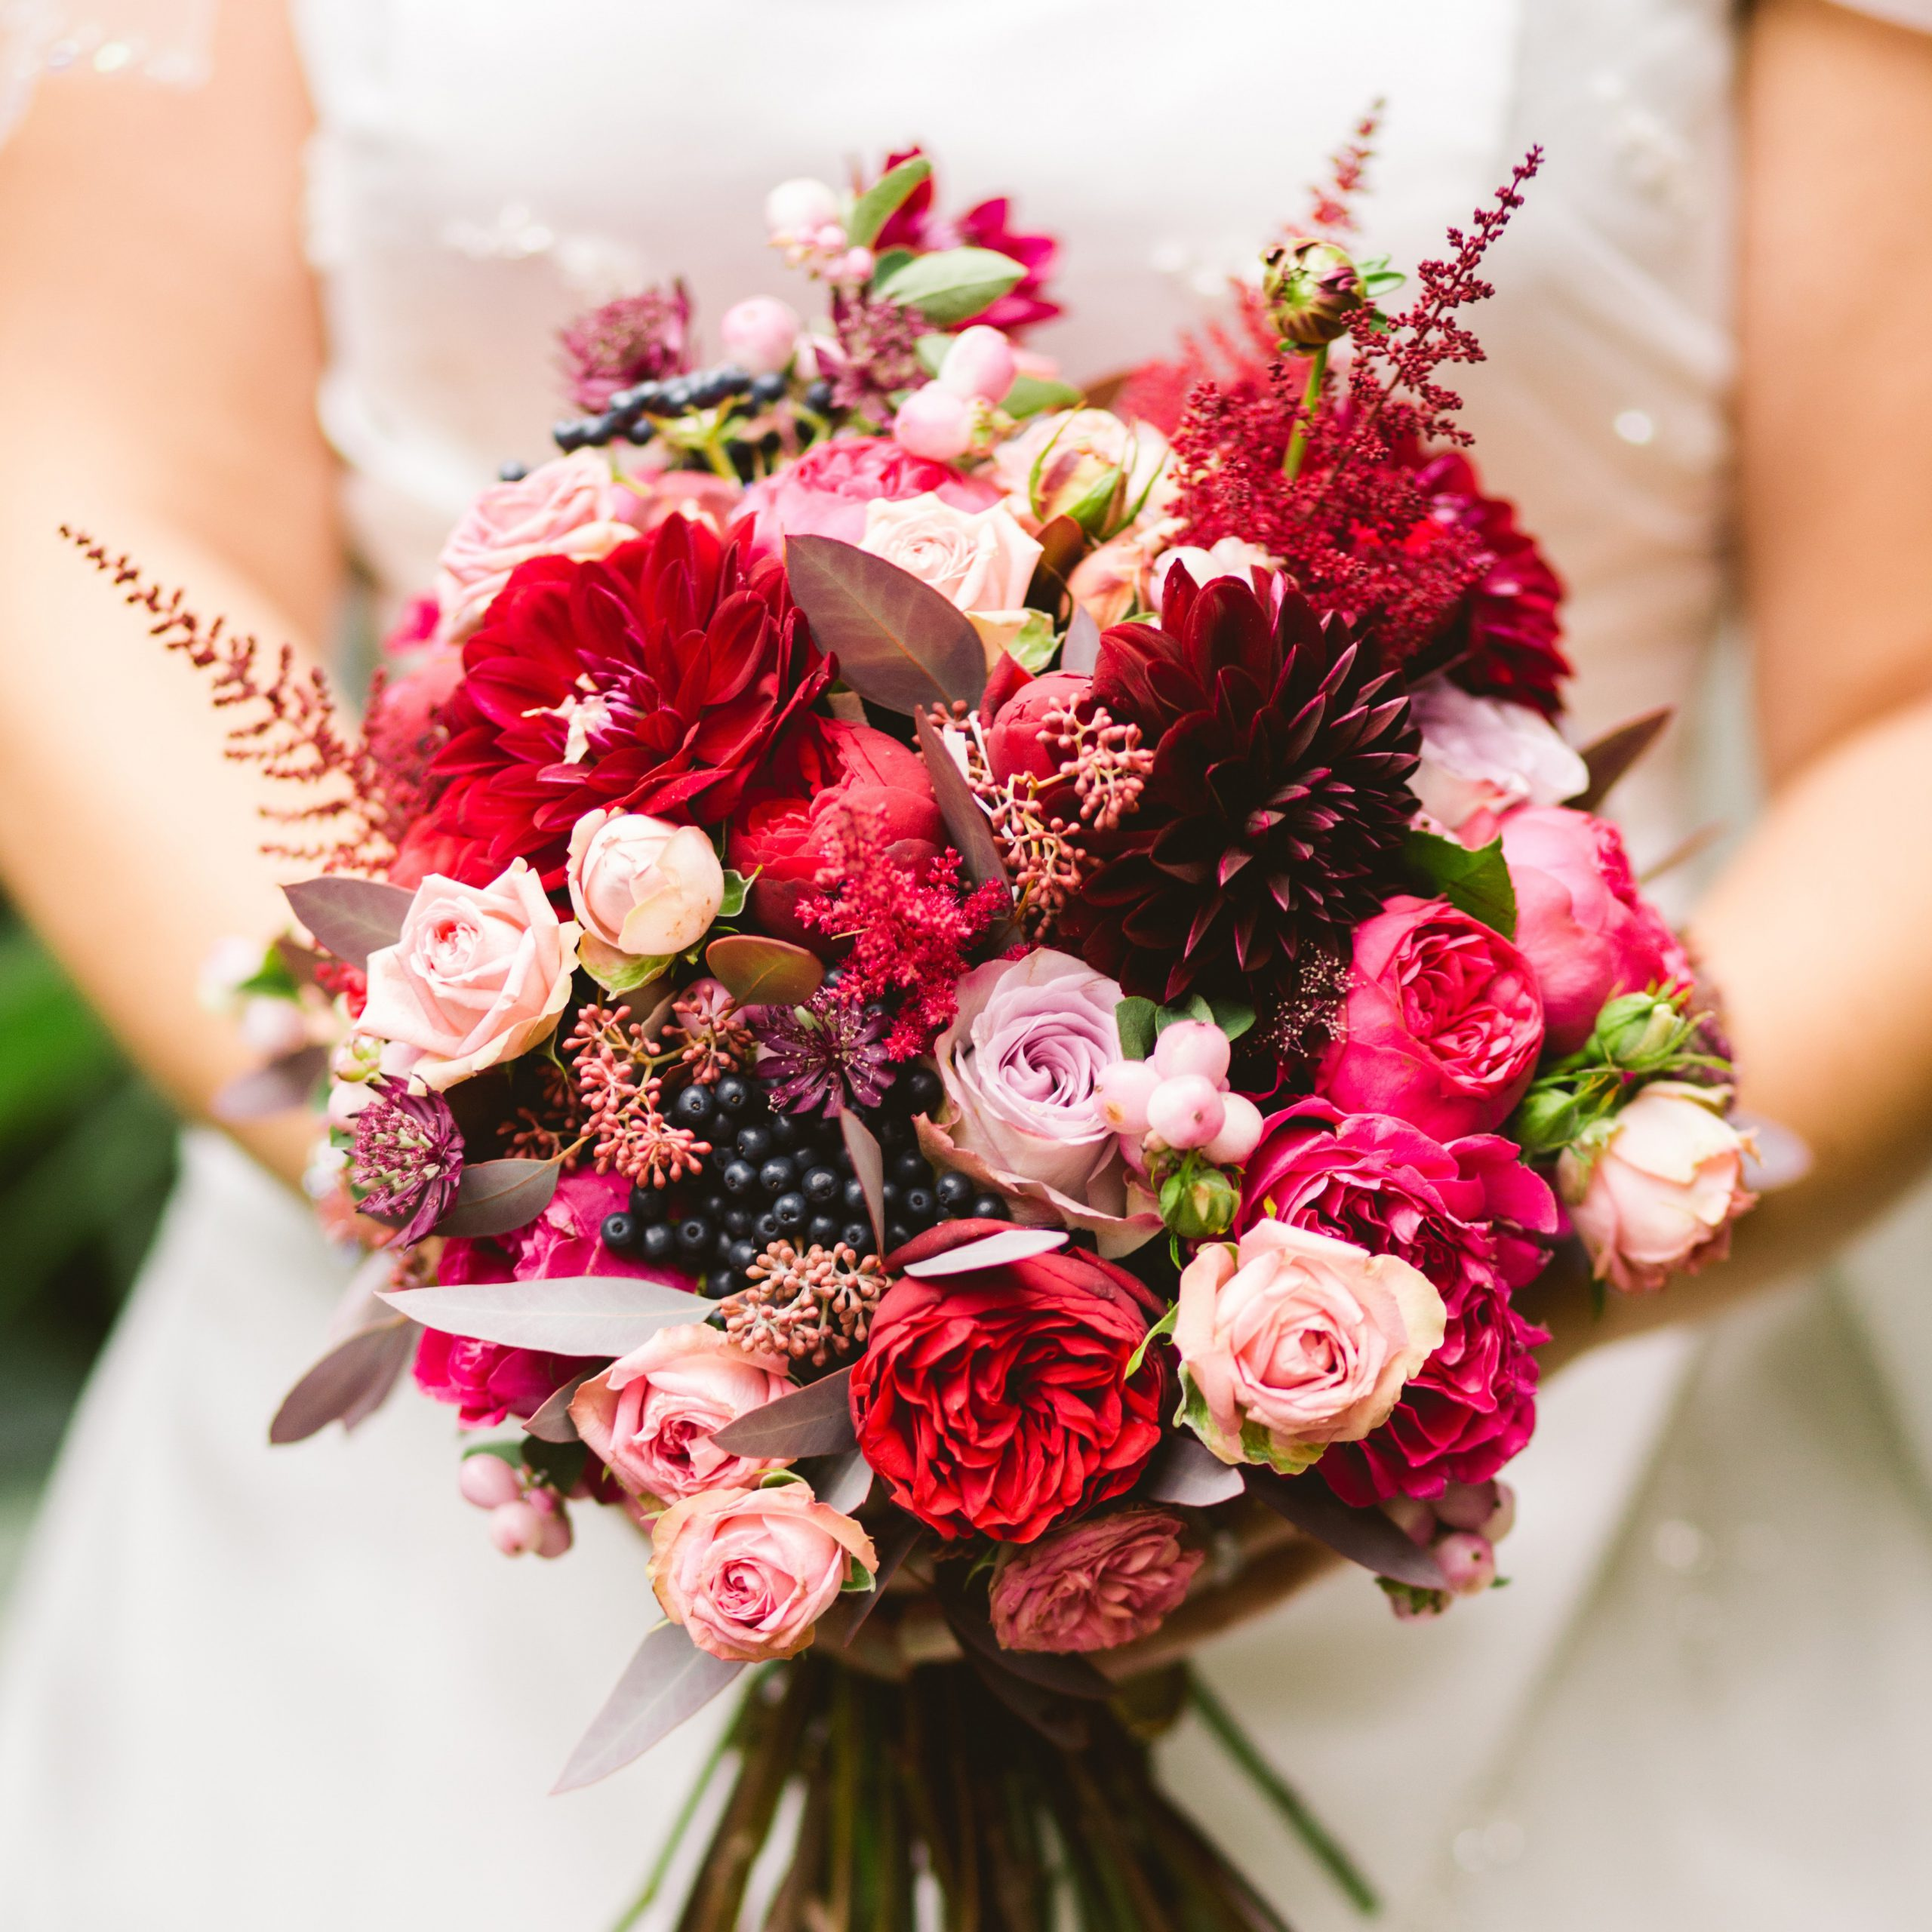 Booking a Wedding Florist- What you need to ask before you book